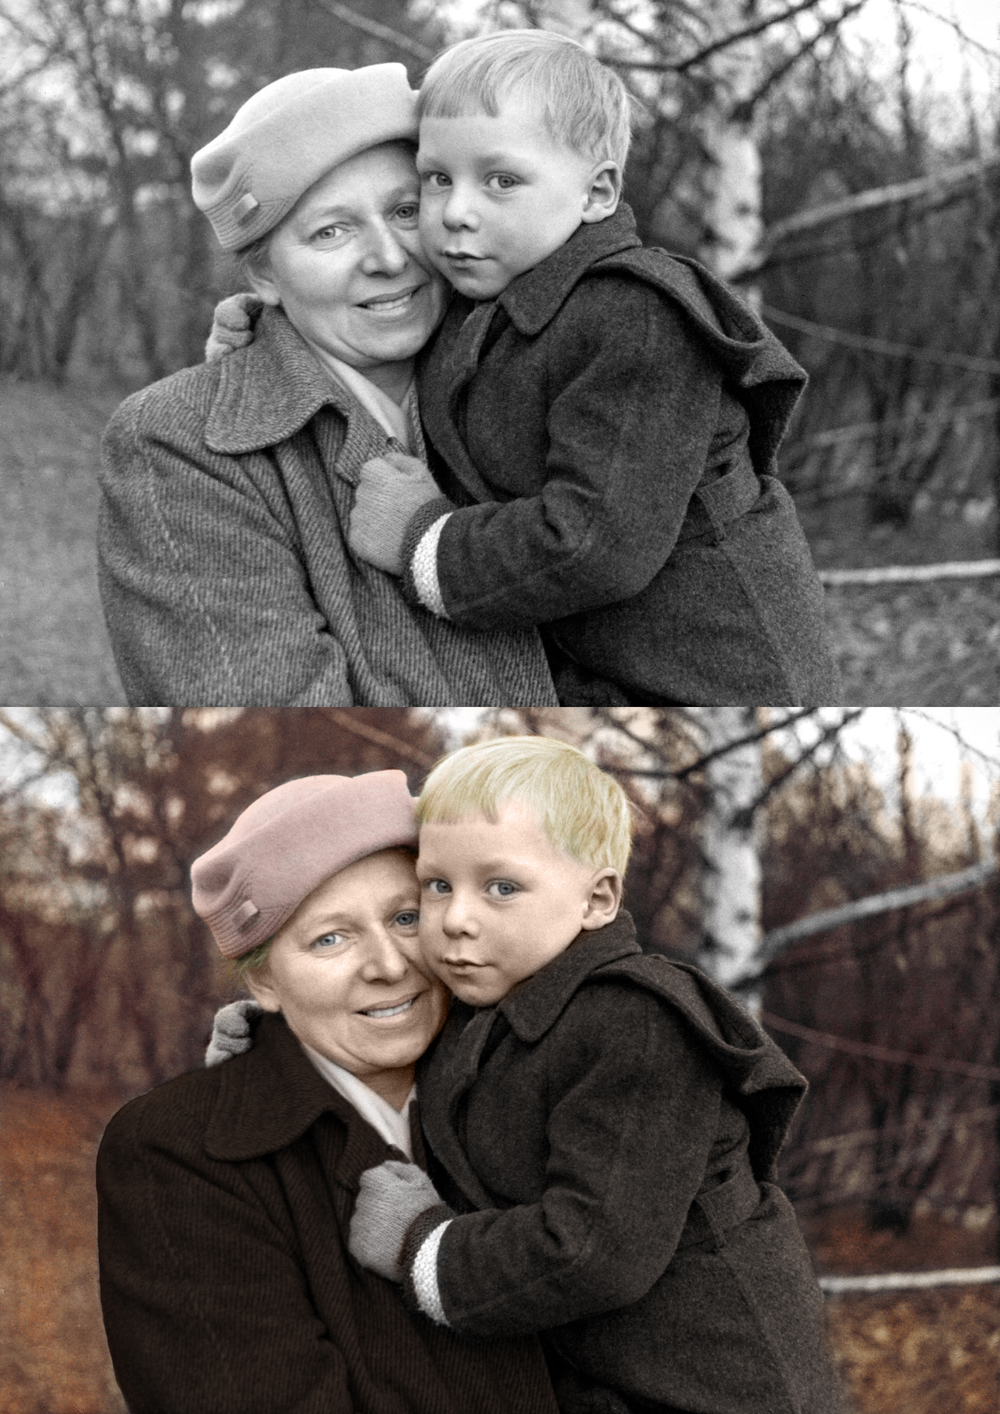 This is an image I simply colorized. The fee for colorizing an image will range from $40-$75 depending on how detailed the image is.